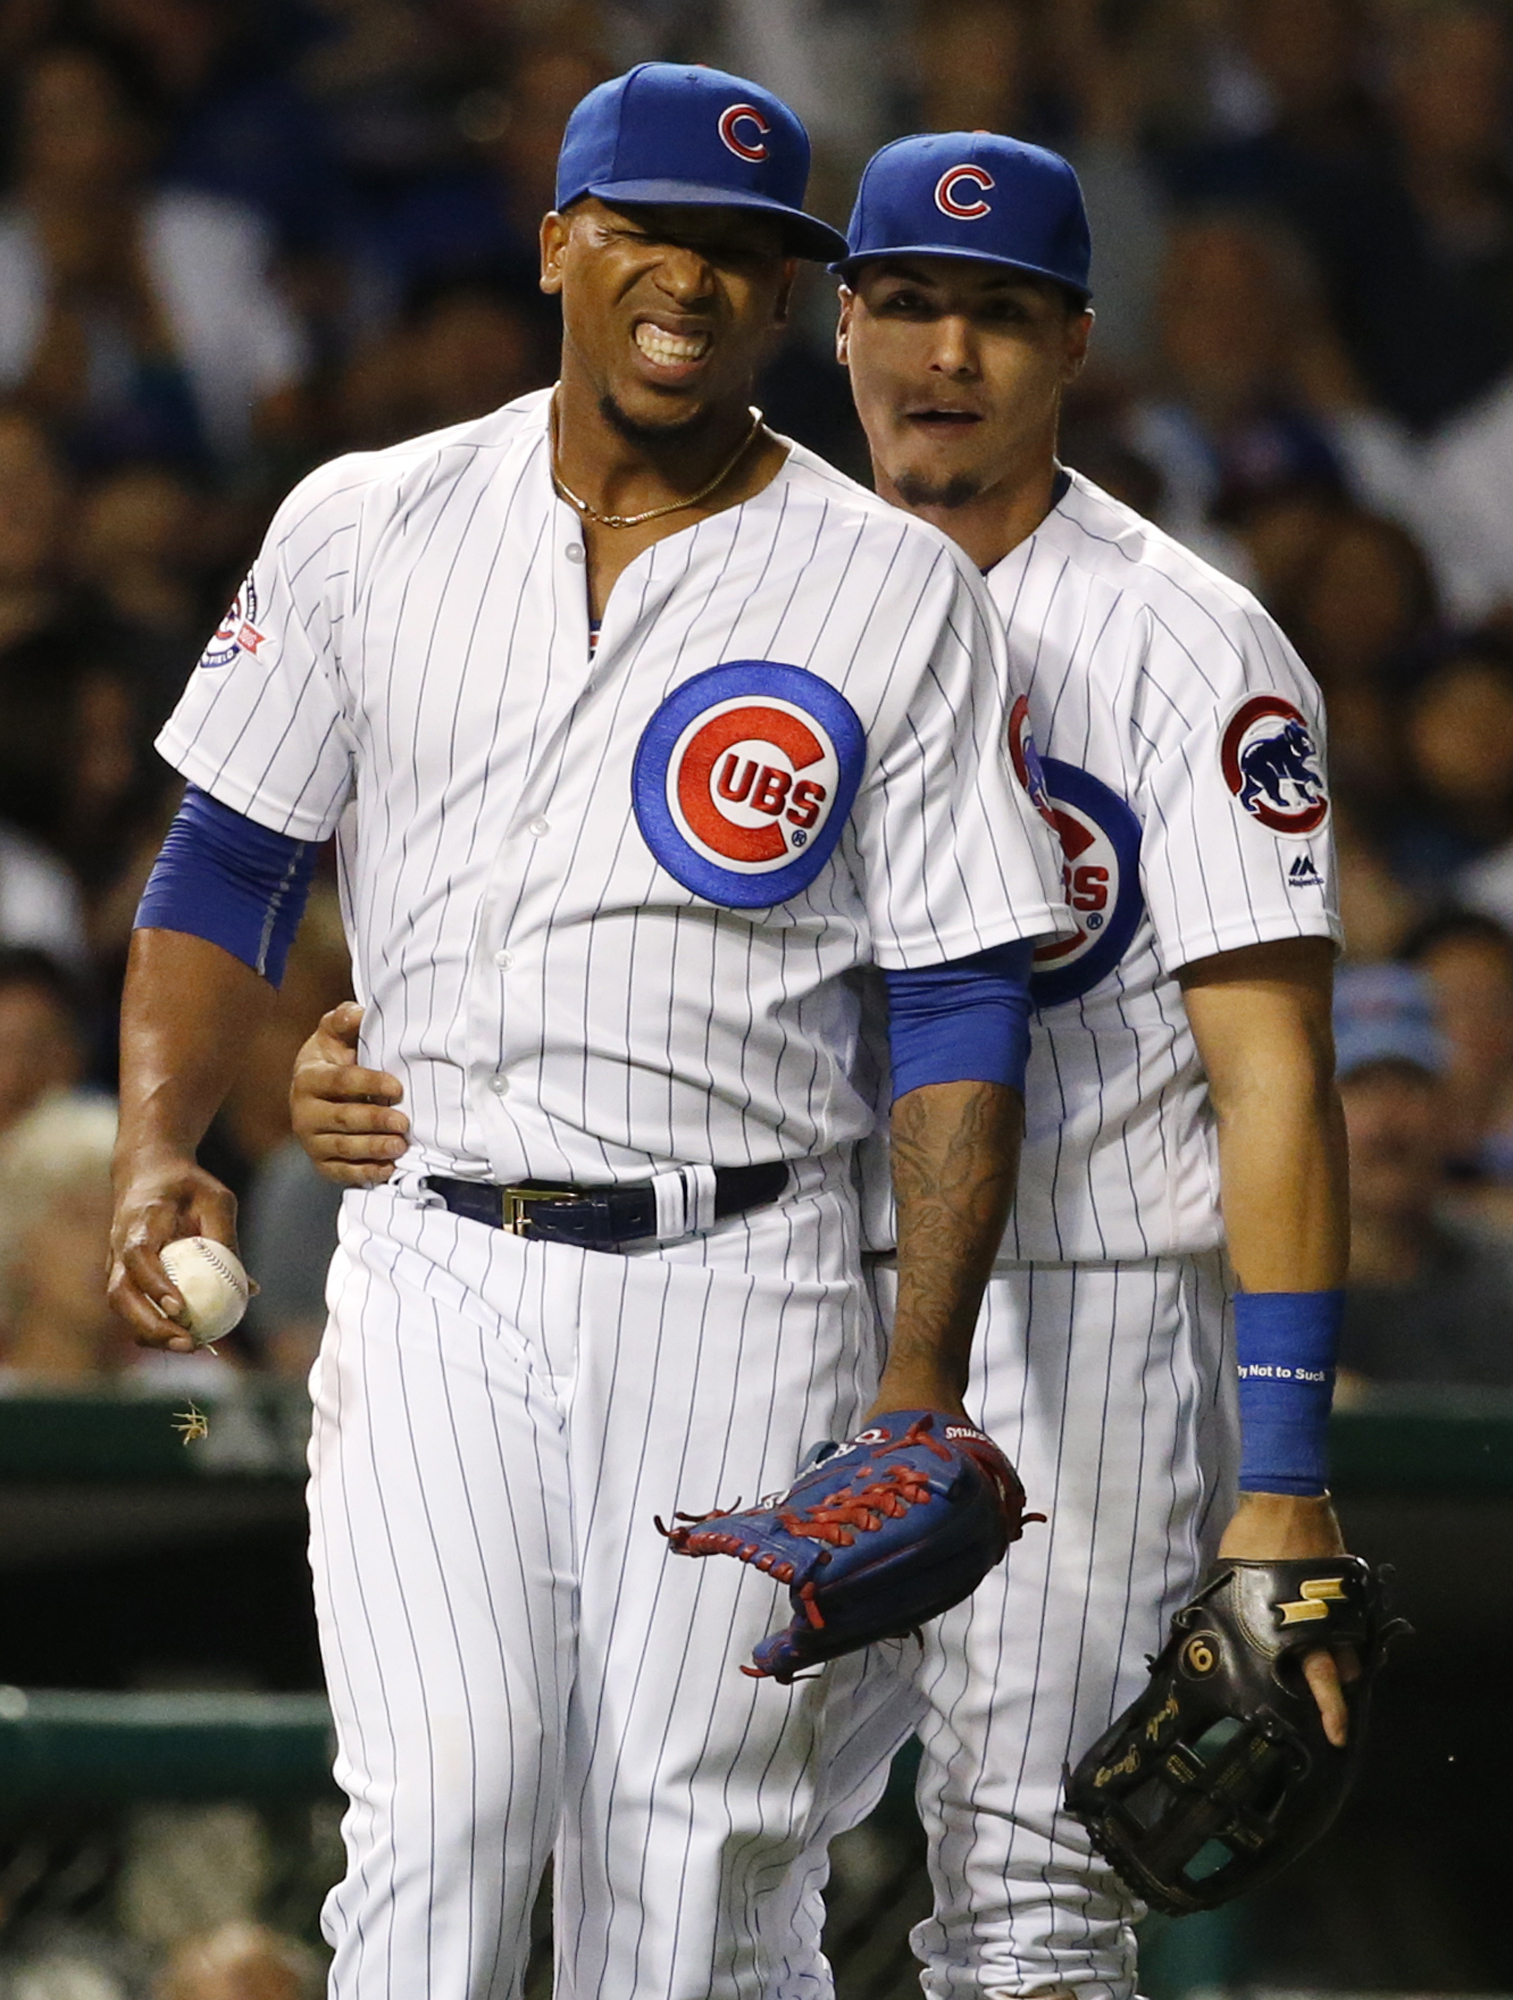 Chicago Cubs relief pitcher Pedro Strop, left, reacts after injury and third baseman Javier Baez stands behind him during the eighth inning of a baseball game against the Los Angeles Angels in Chicago, Wednesday, Aug. 10, 2016. Strop left the game. (AP Ph